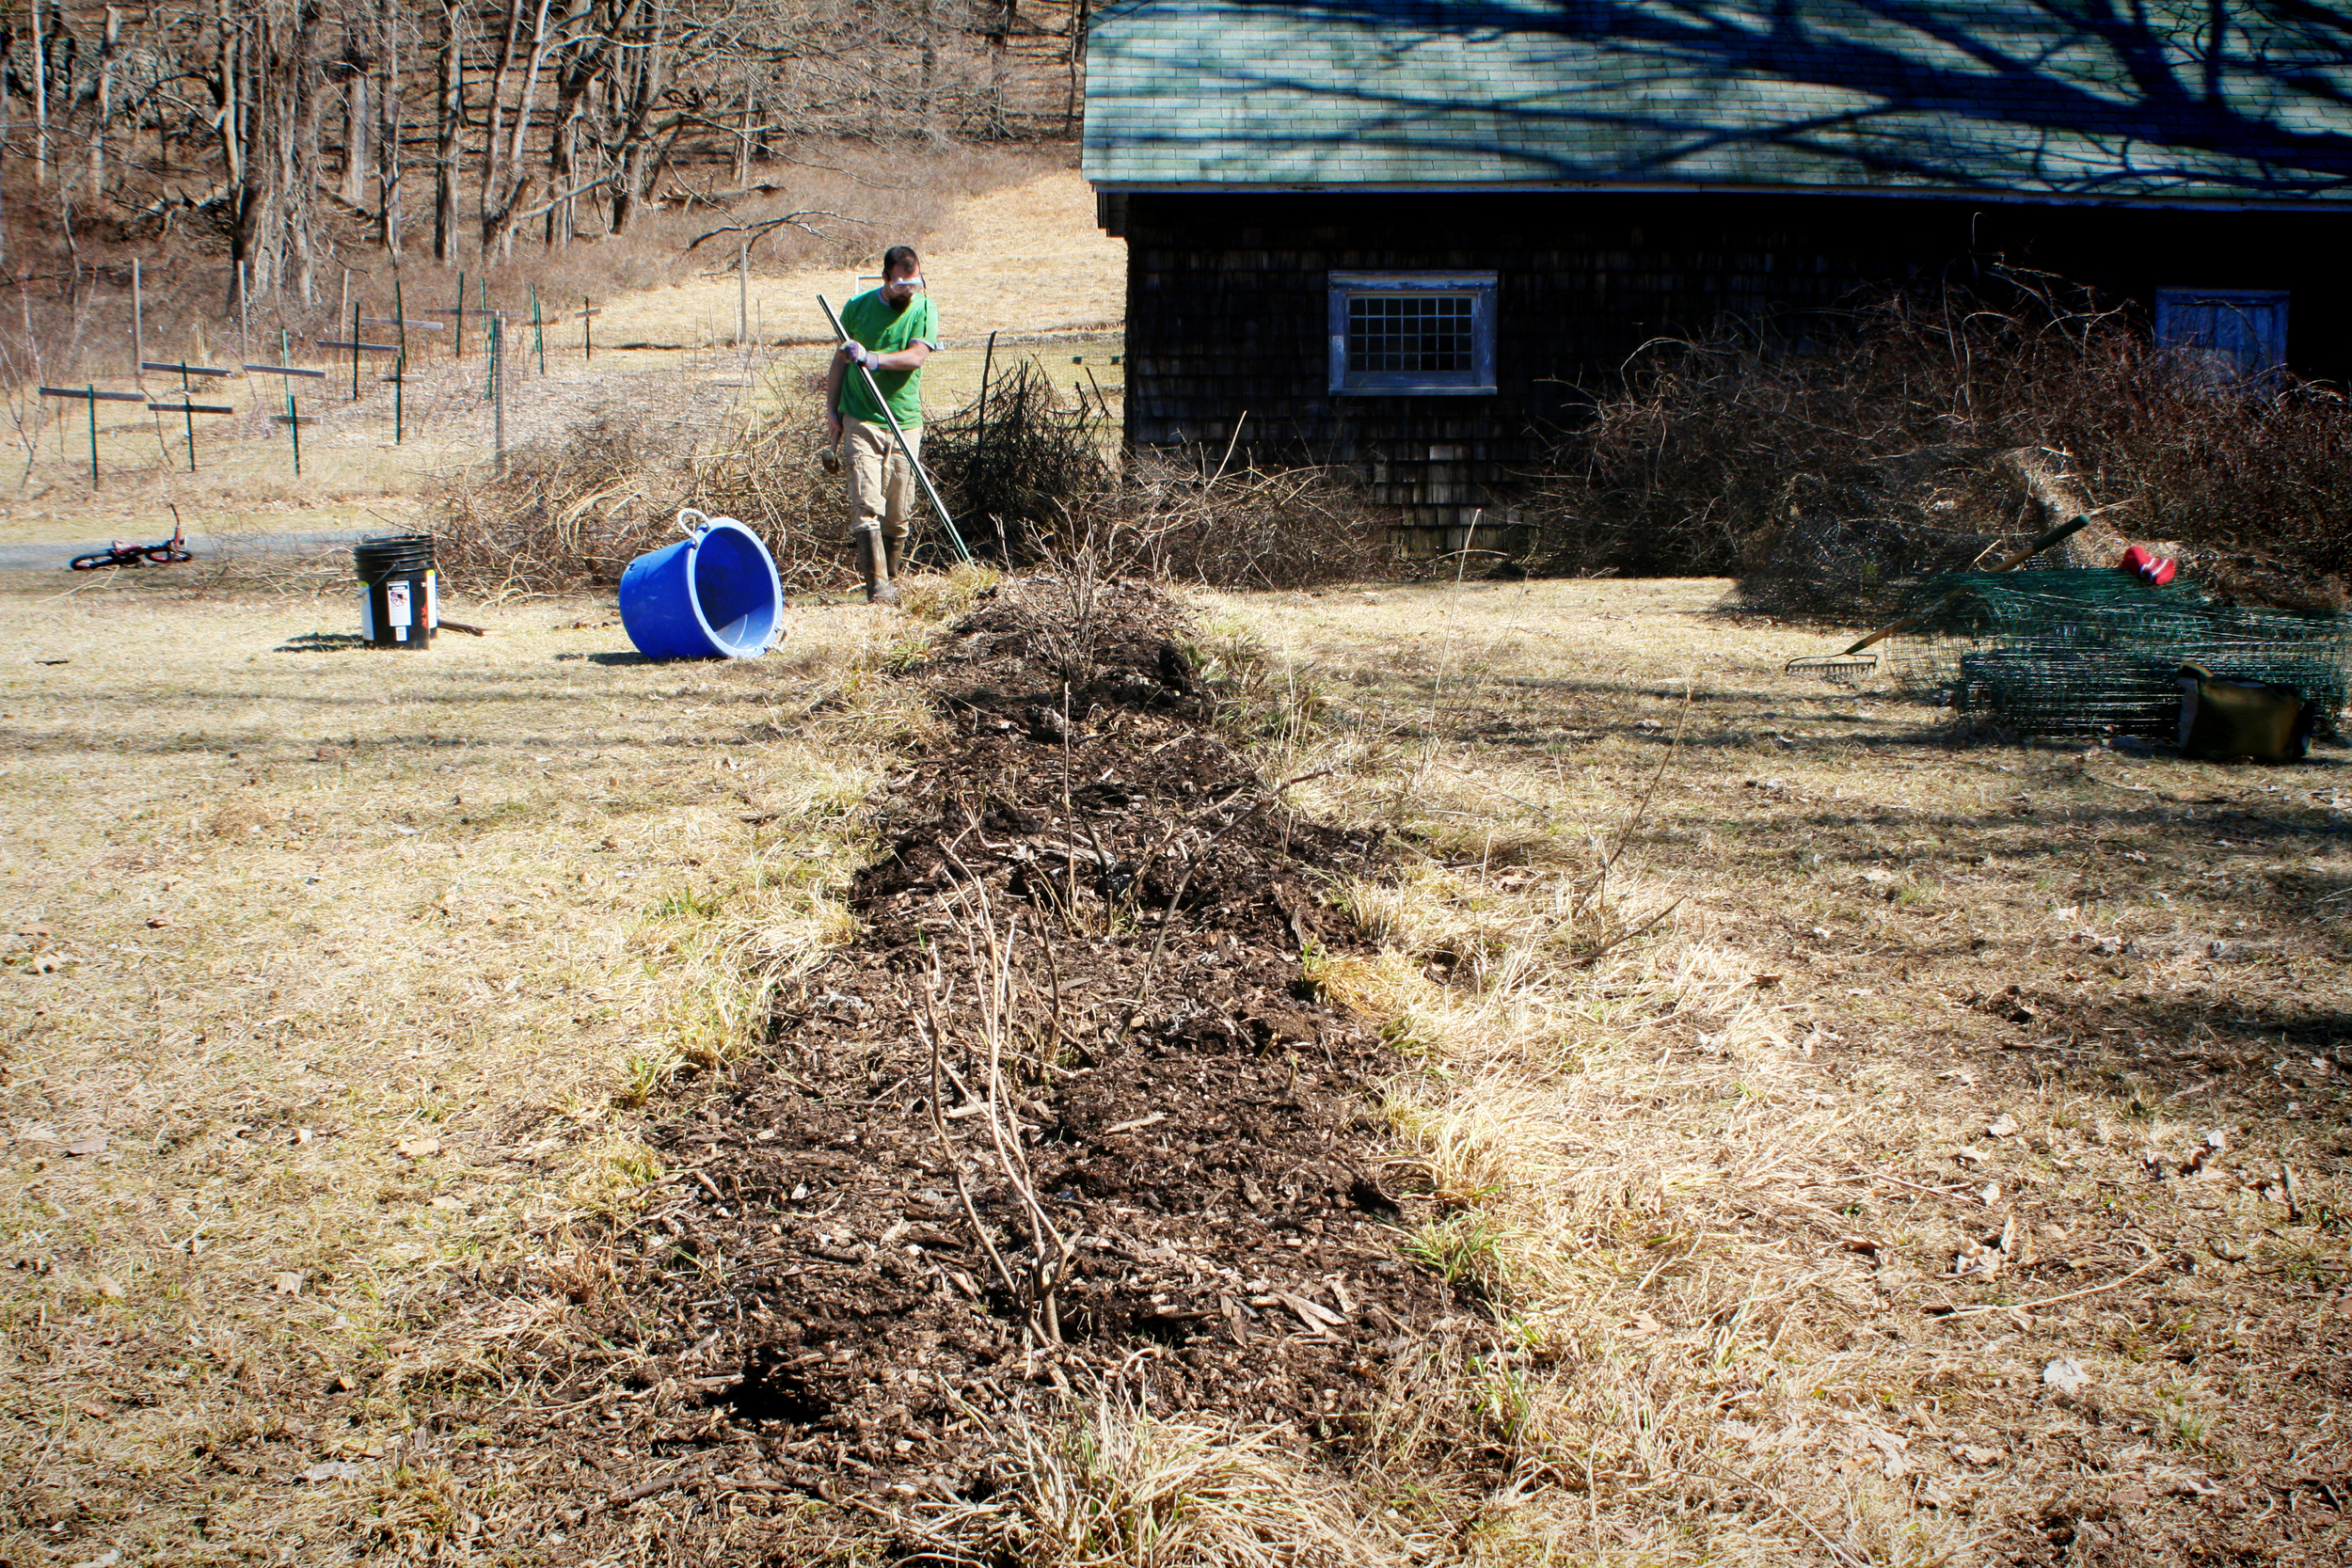 All mulched up. Posts getting hammered into the (painfully) rock-filled ground.